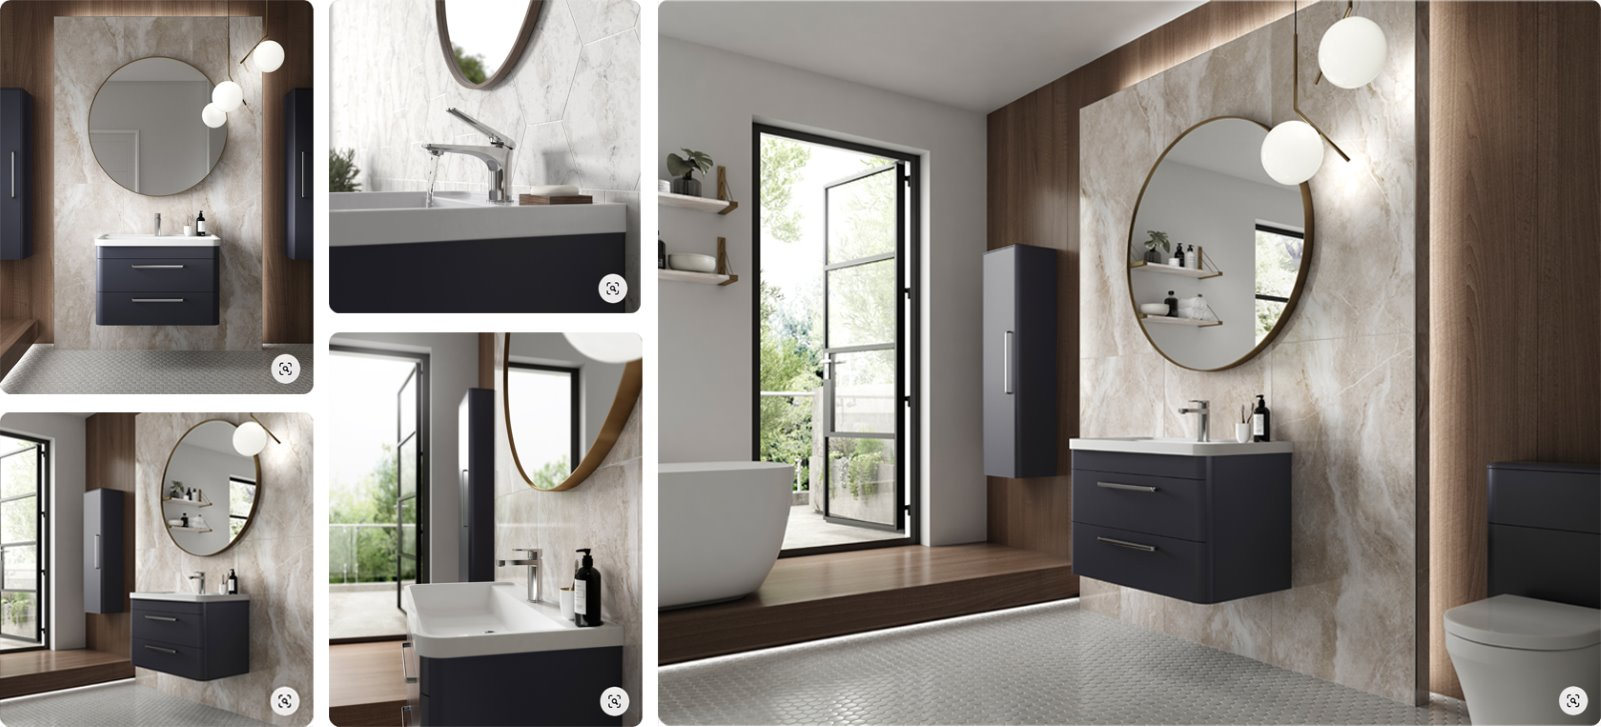 multiple bathroom product shots CGI